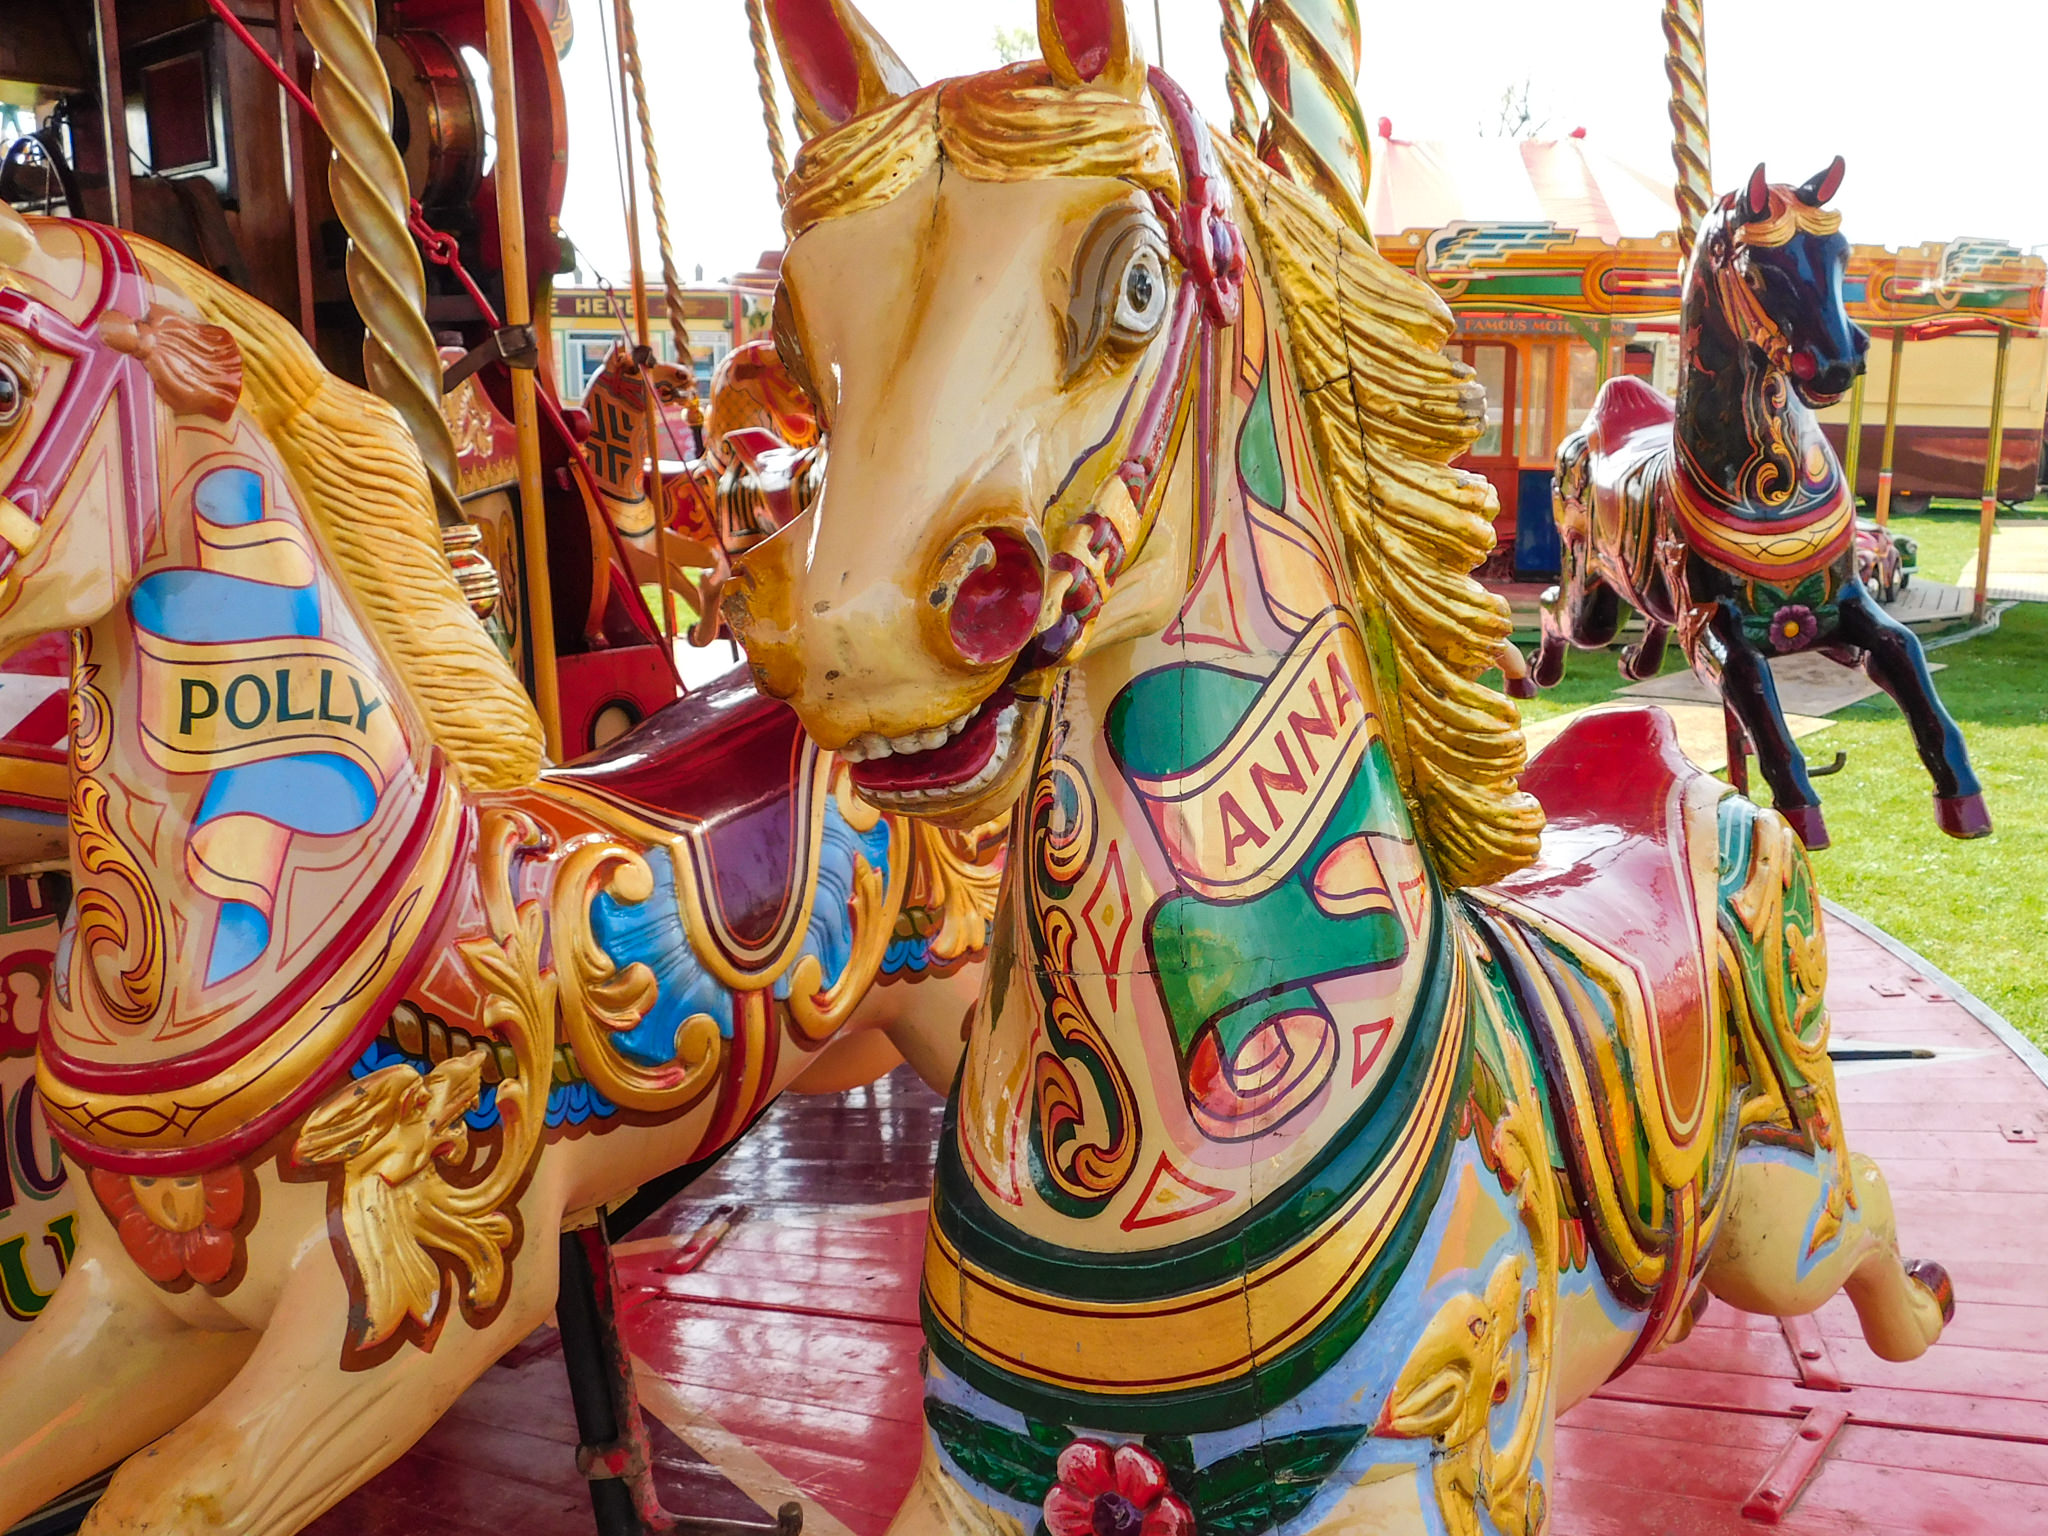 The Steam Gallopers are an English Victorian funfair classic.